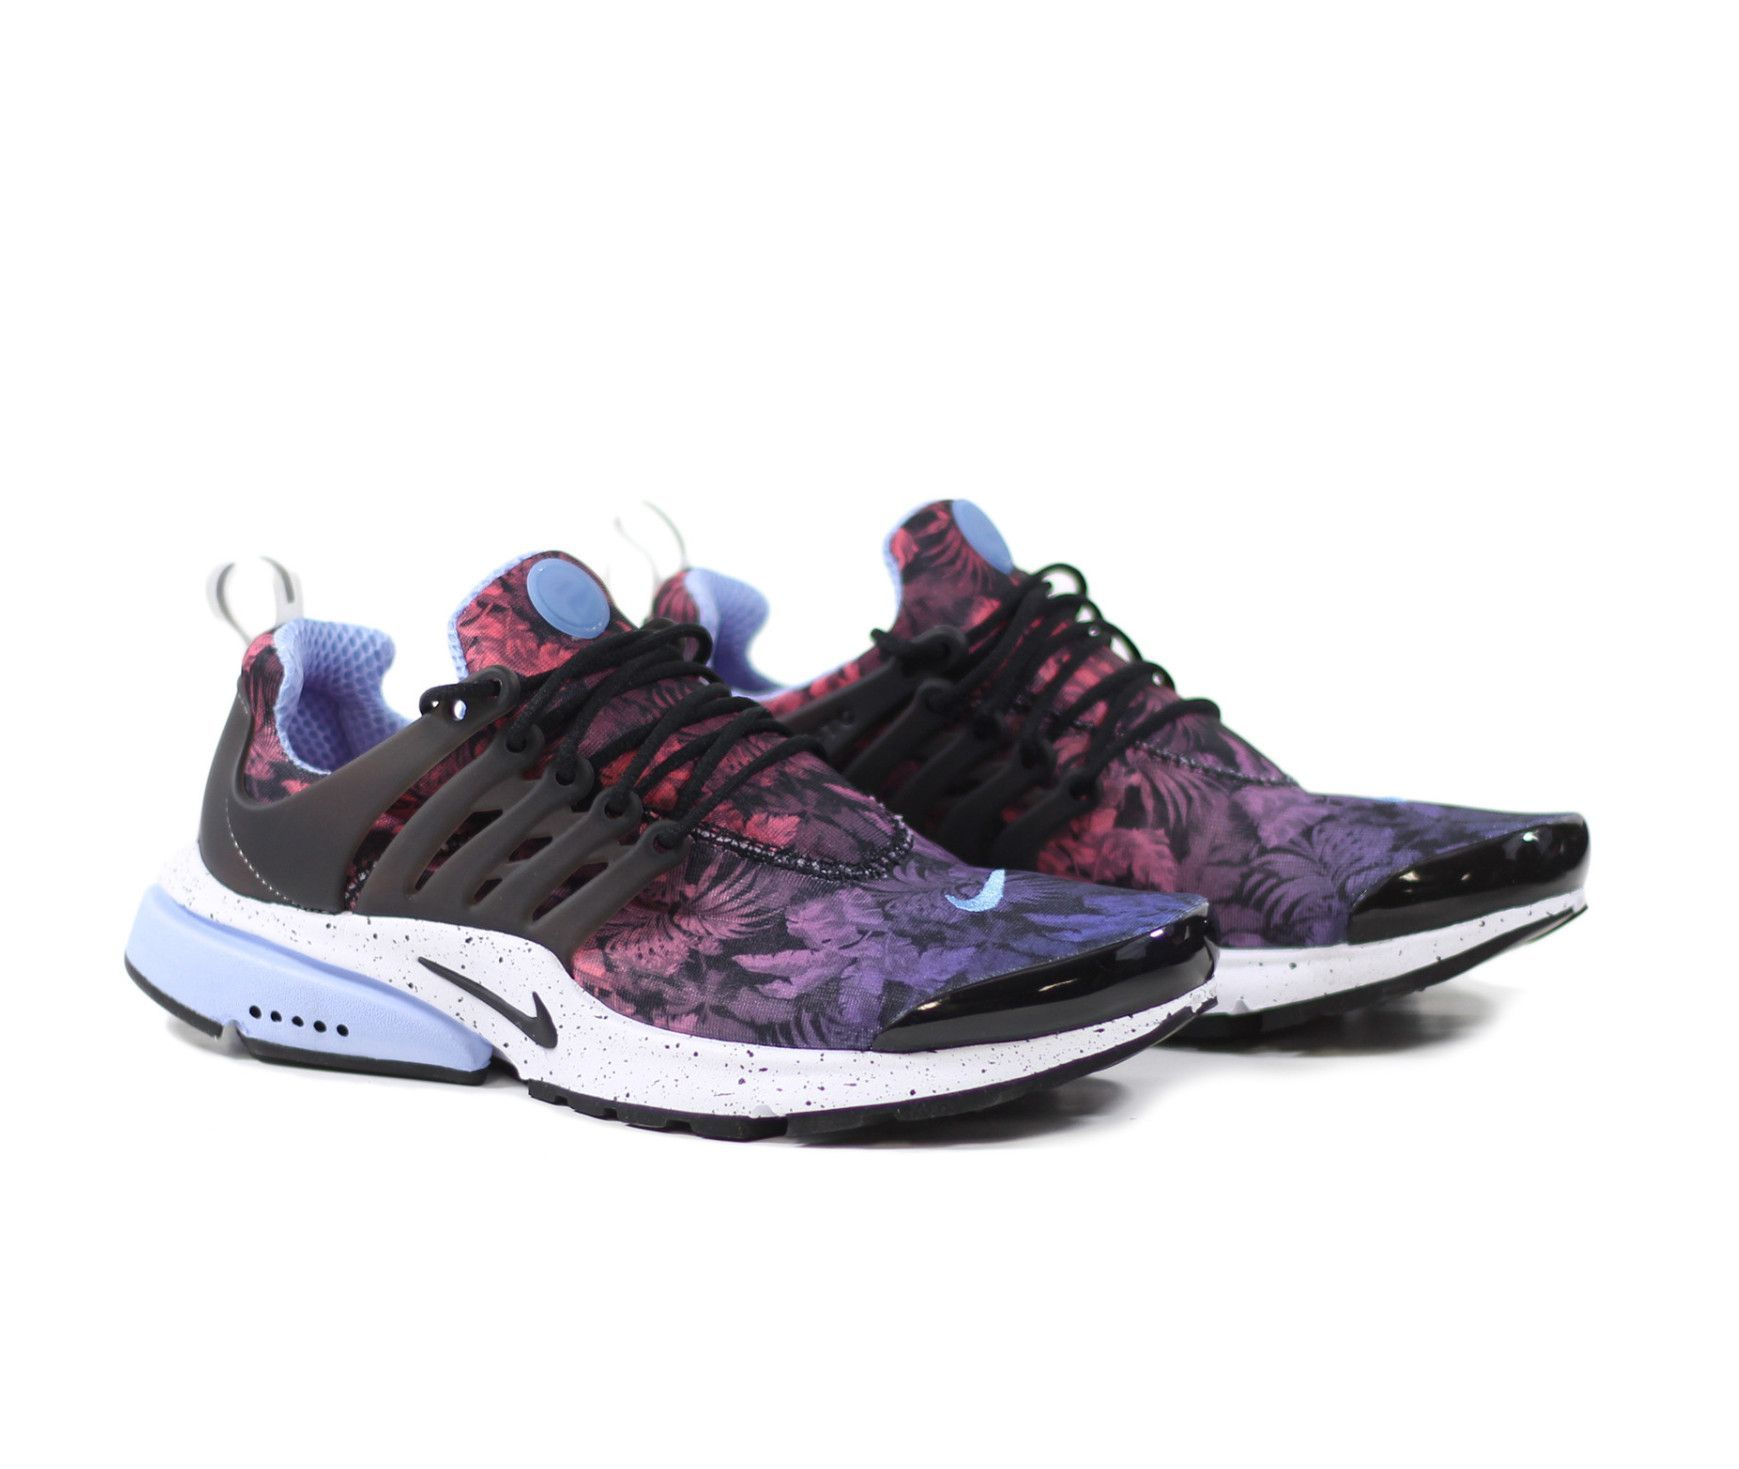 075d6eedc1ae NIKE Air Presto GPX - Aluminum Black-White Sock Shoes